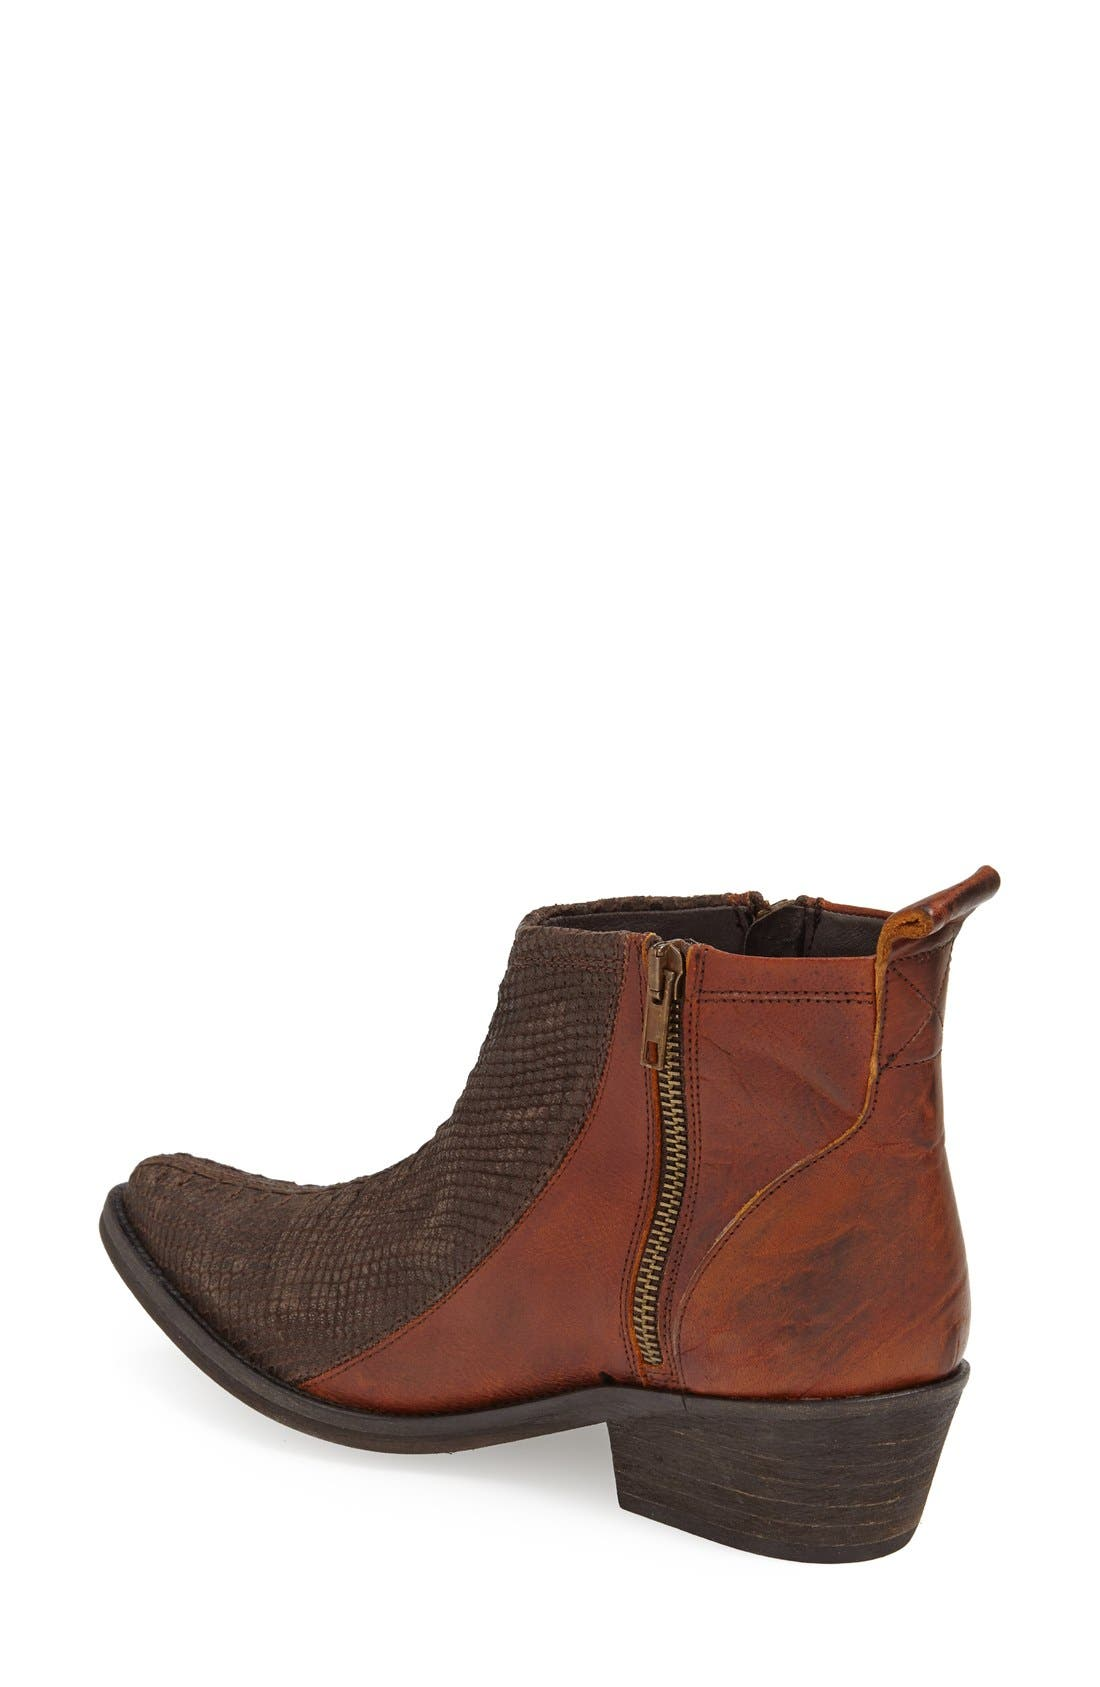 Alternate Image 2  - Free People 'Flying Ranch' Pointy Toe Bootie (Women)